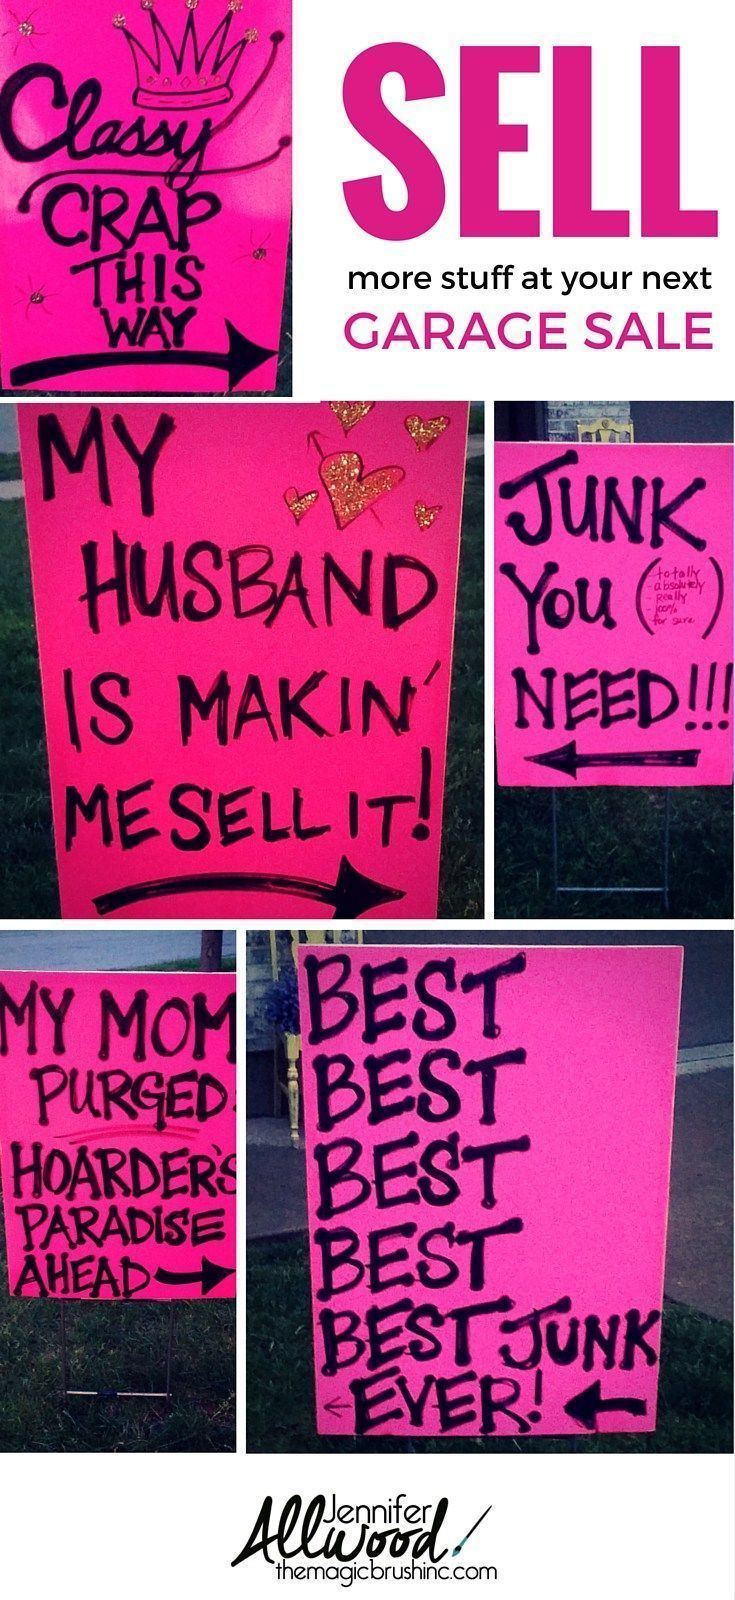 How to's : How to advertise for a Garage Sale with Clever Signs by Jennifer Allwood  #garagesale #signs